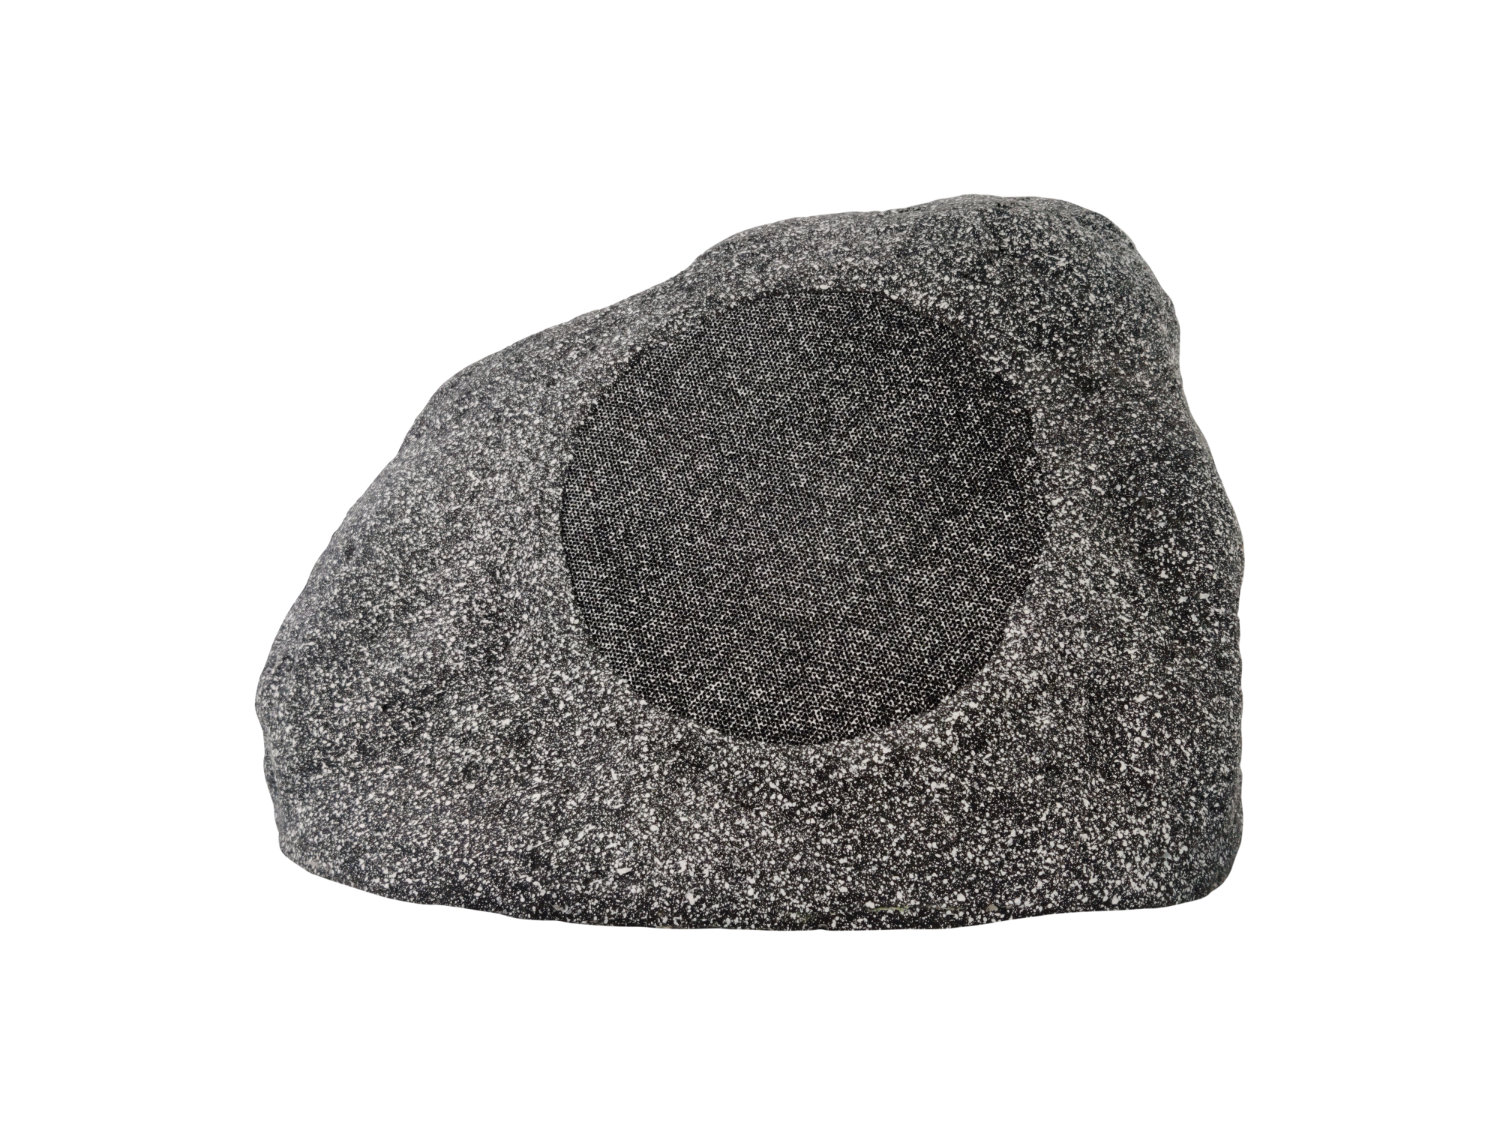 Granite-10 Outdoor Subwoofer